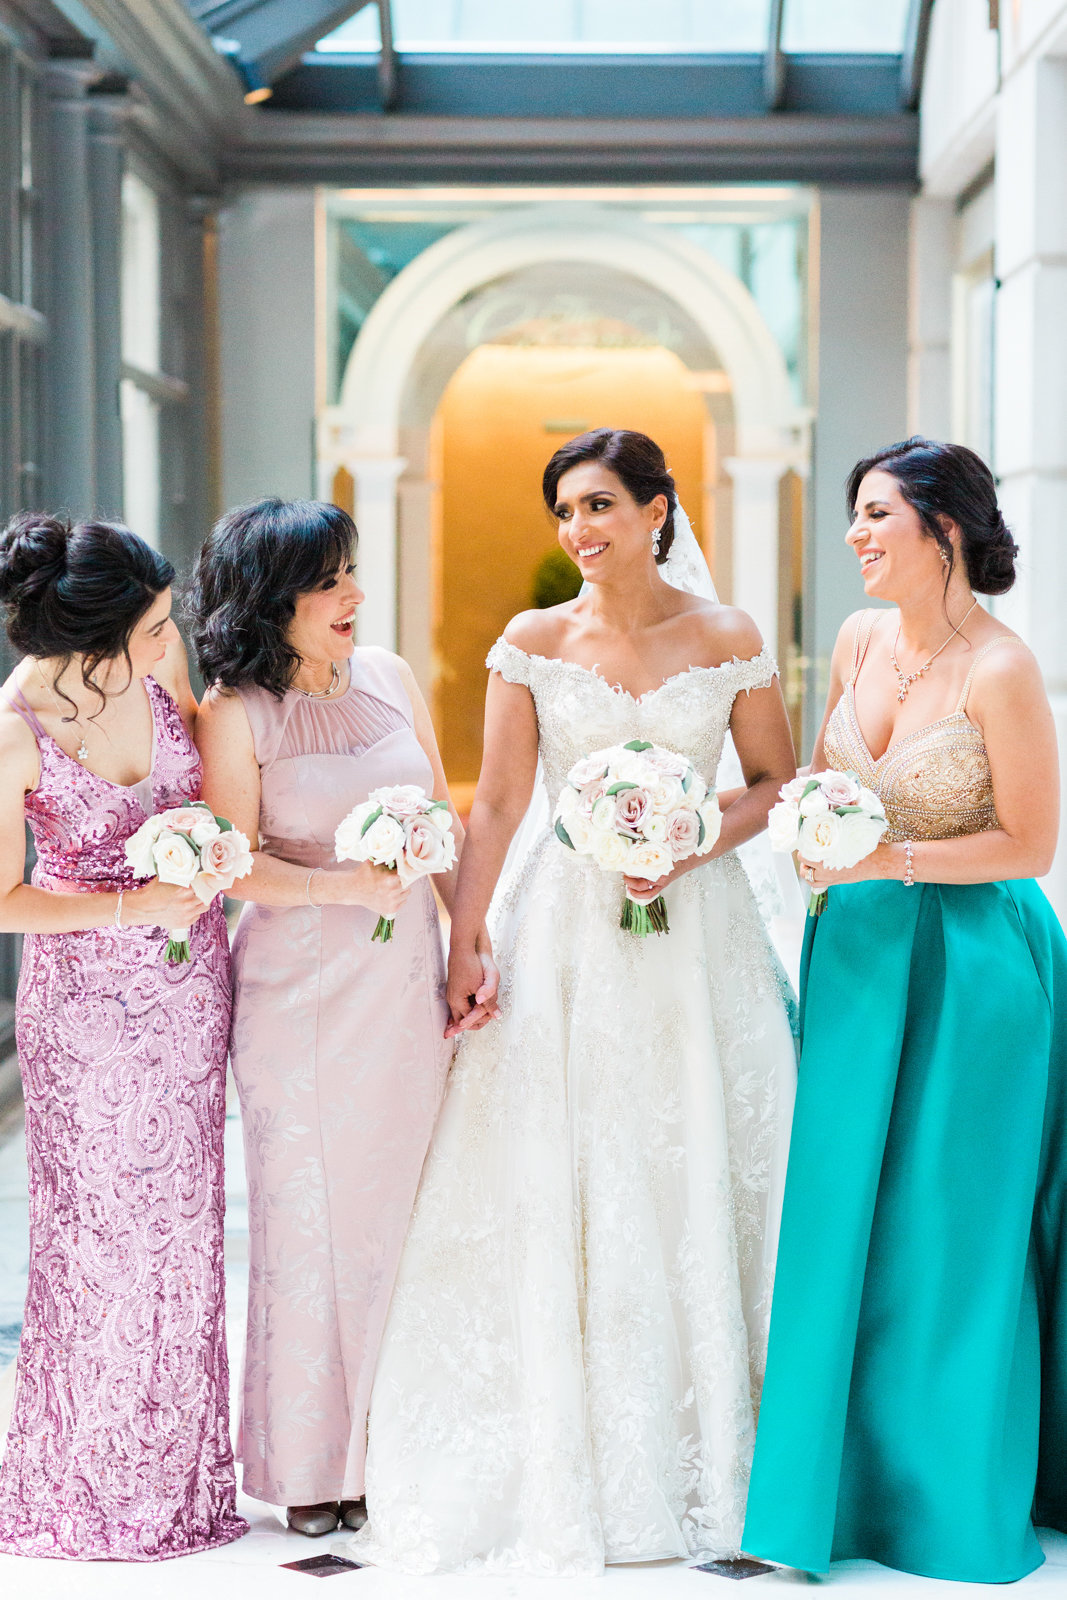 Fairmont Hotel DC wedding photographer